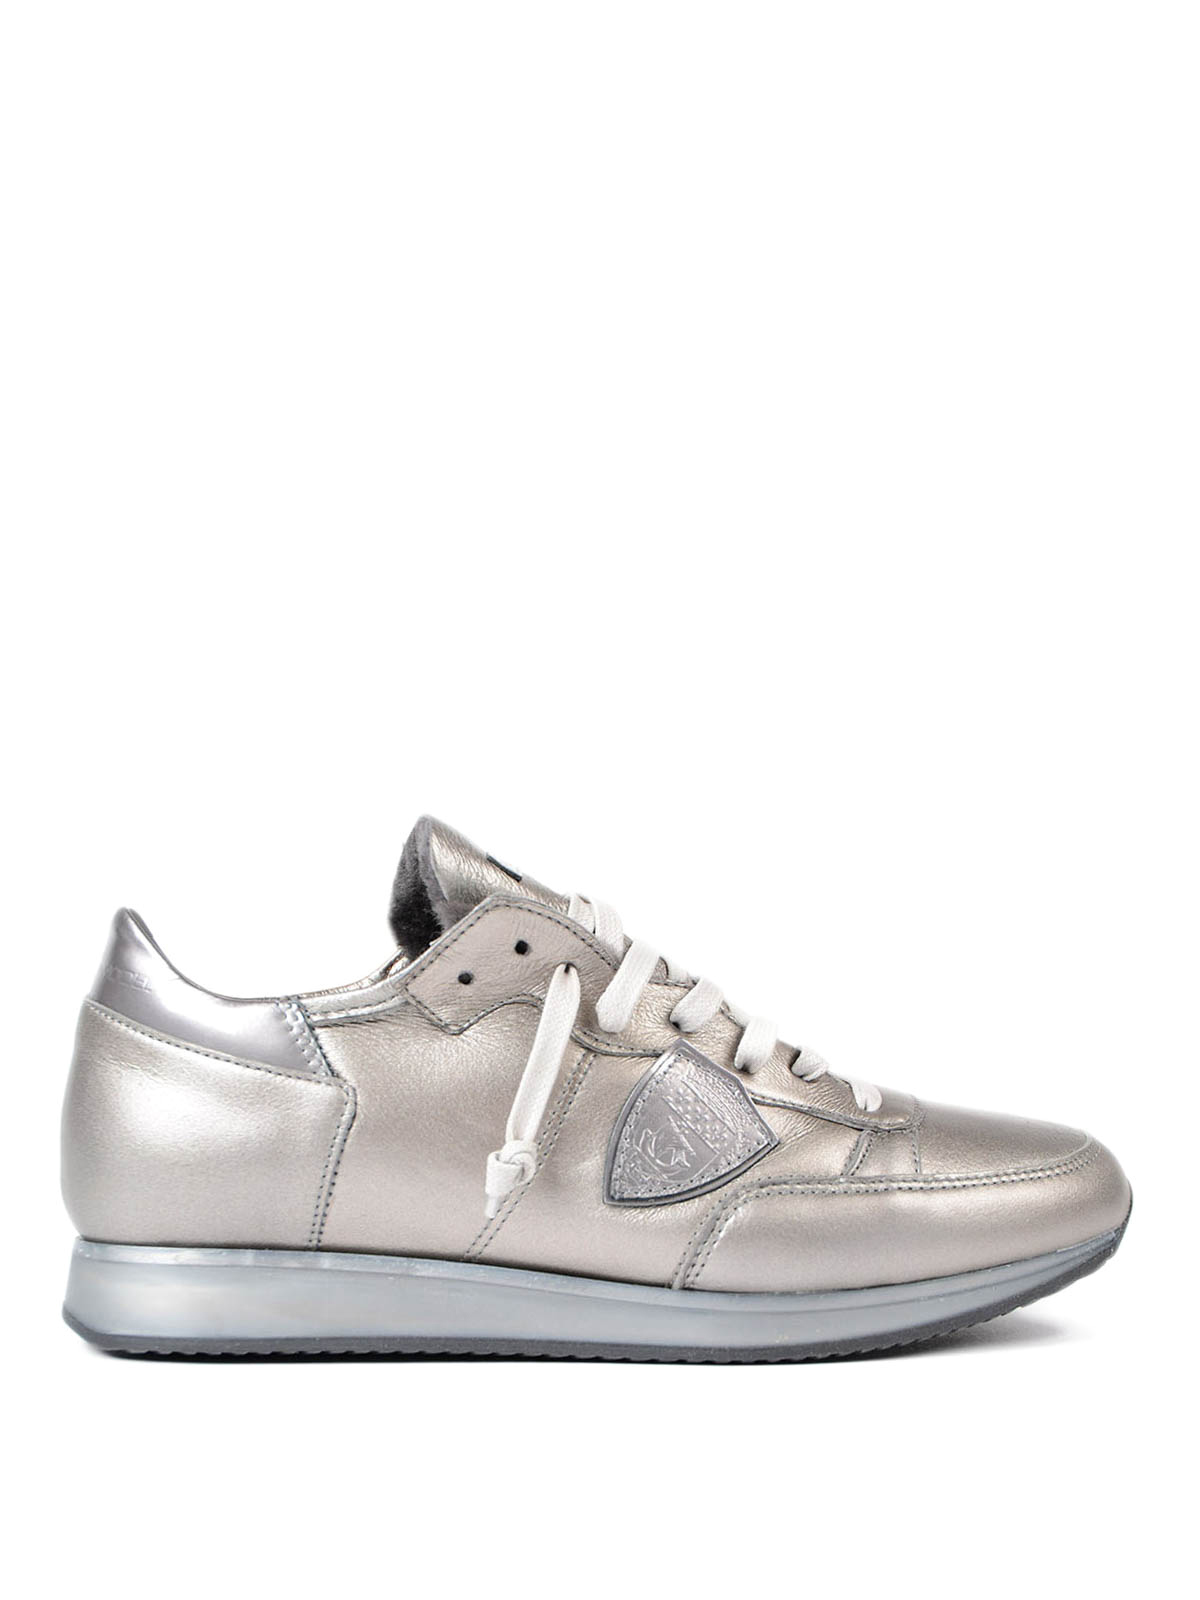 tropez metallic leather sneakers by philippe model trainers ikrix. Black Bedroom Furniture Sets. Home Design Ideas